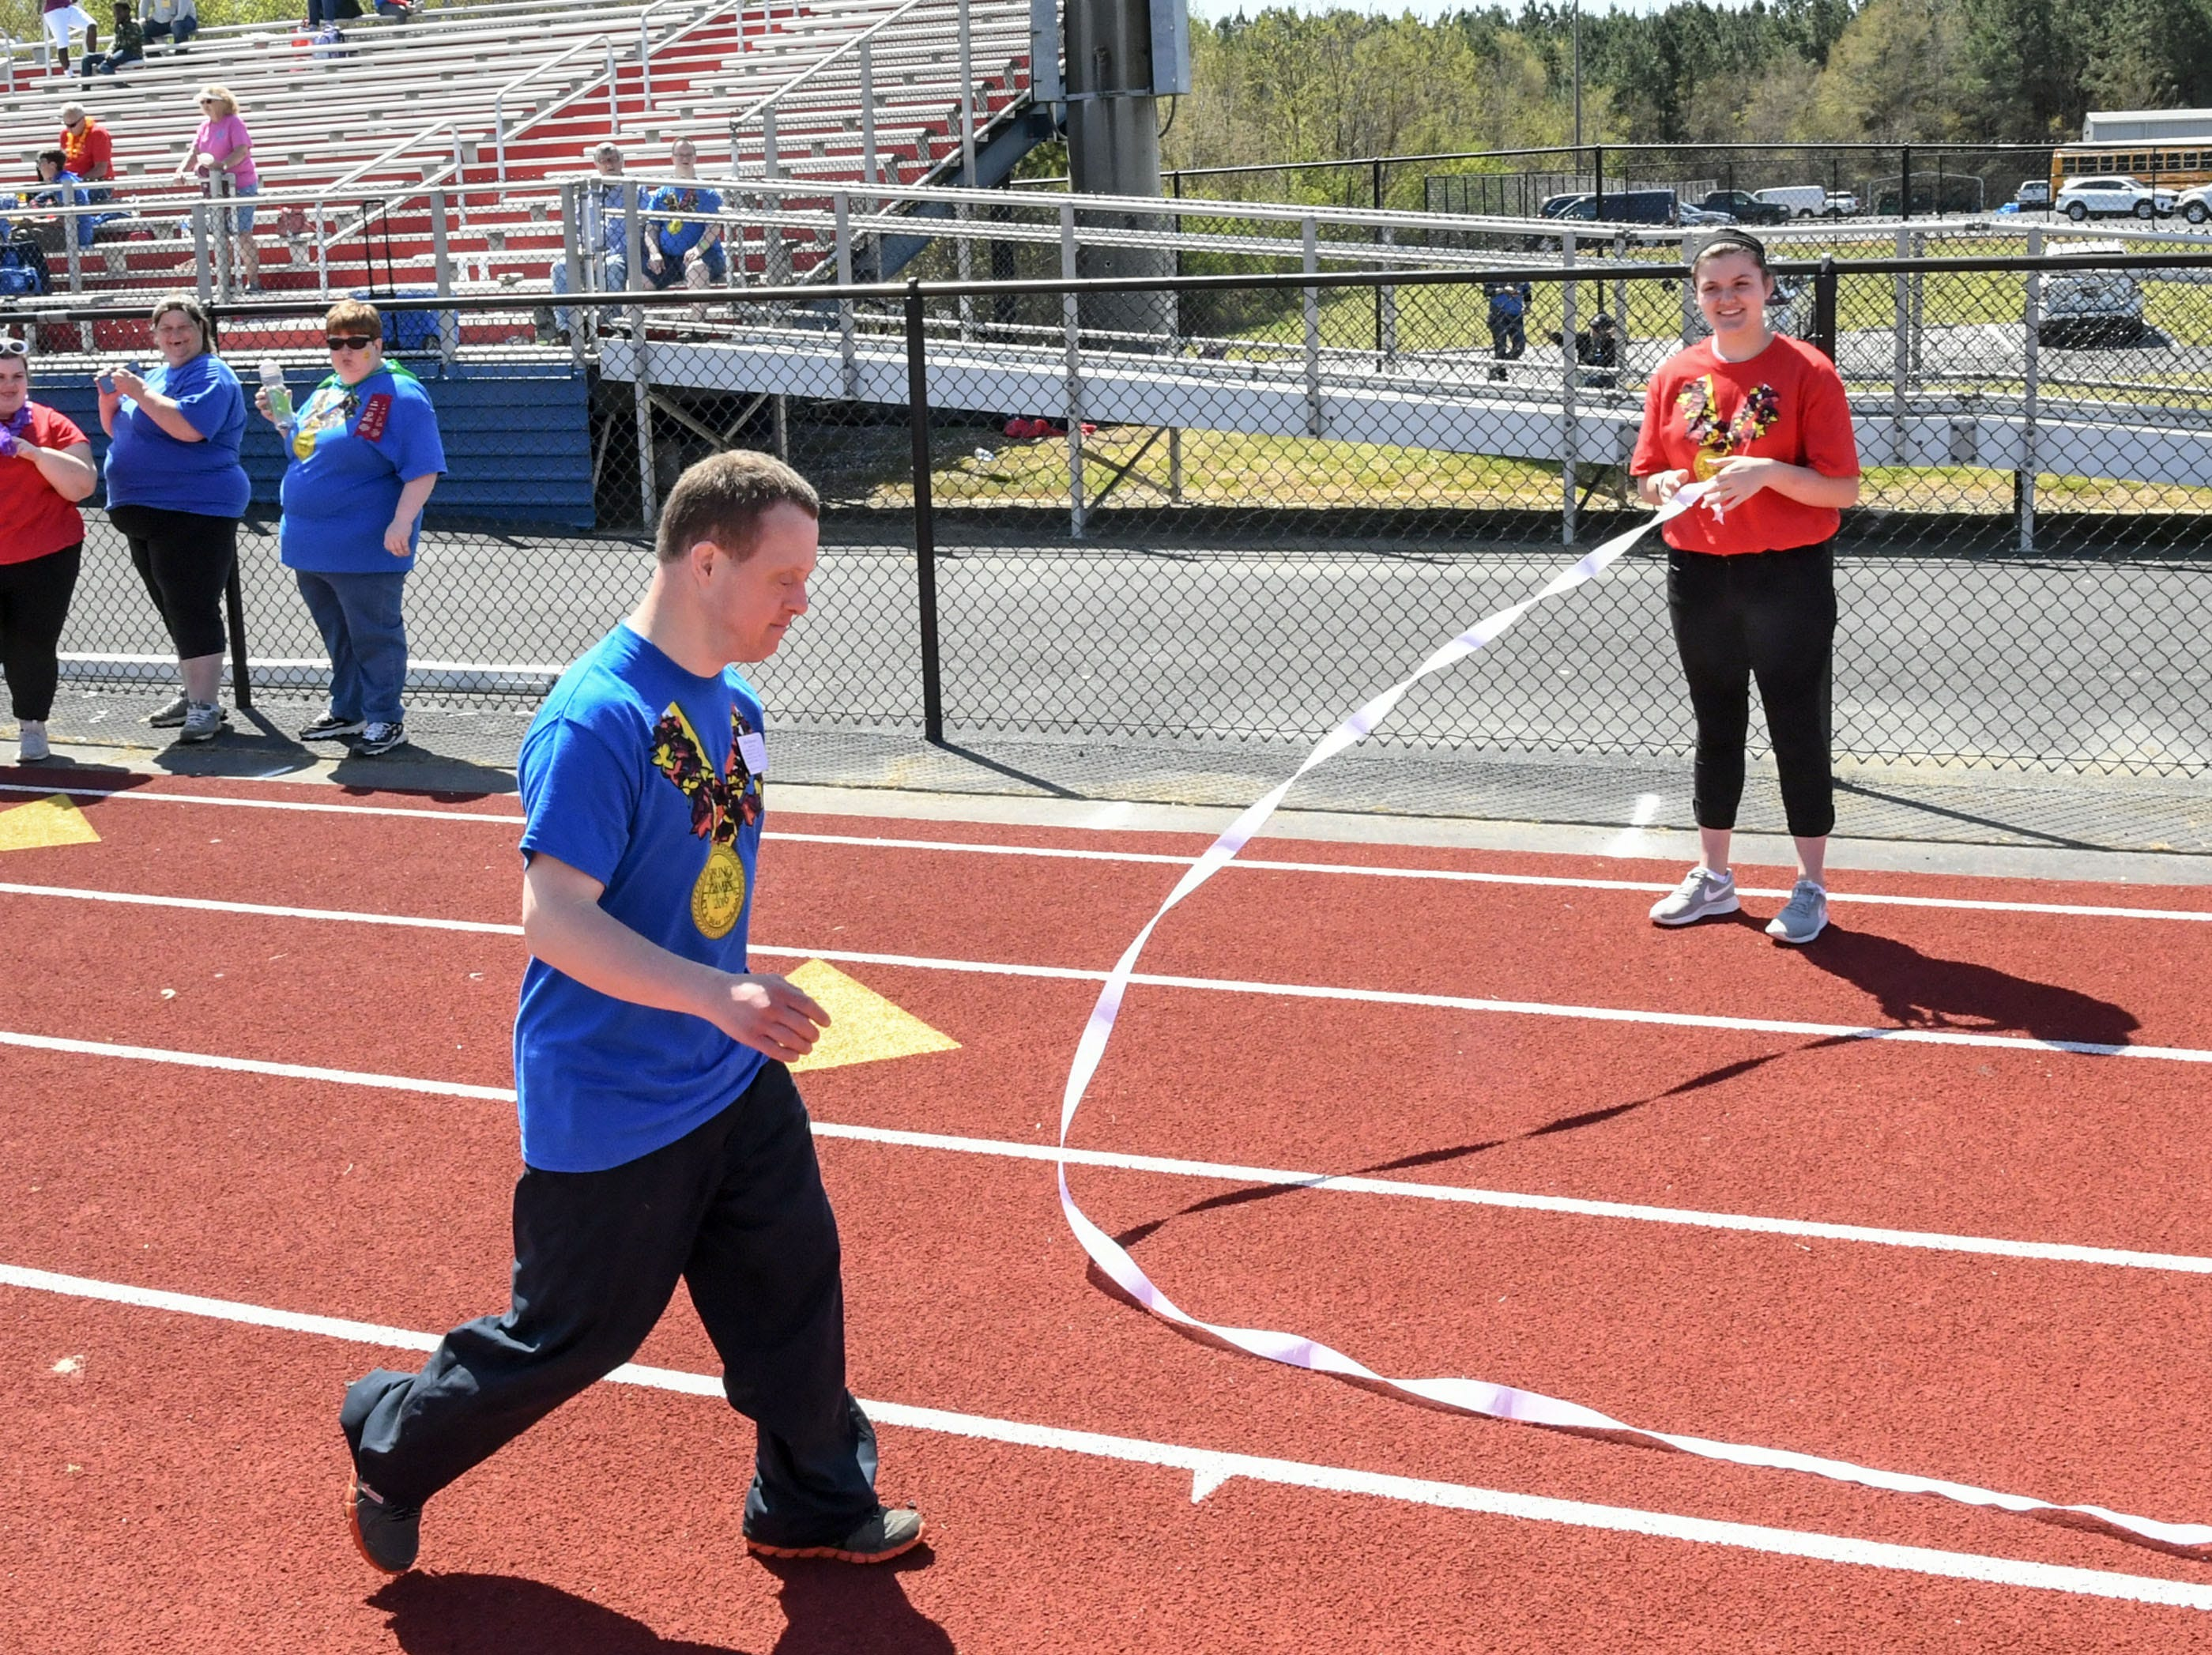 Brad Hammond of Anderson finishes the 100 yard walk during the Special Olympics South Carolina Area 14 Spring Games at Marlee Gambrell field at Belton-Honea Path High School Wednesday.